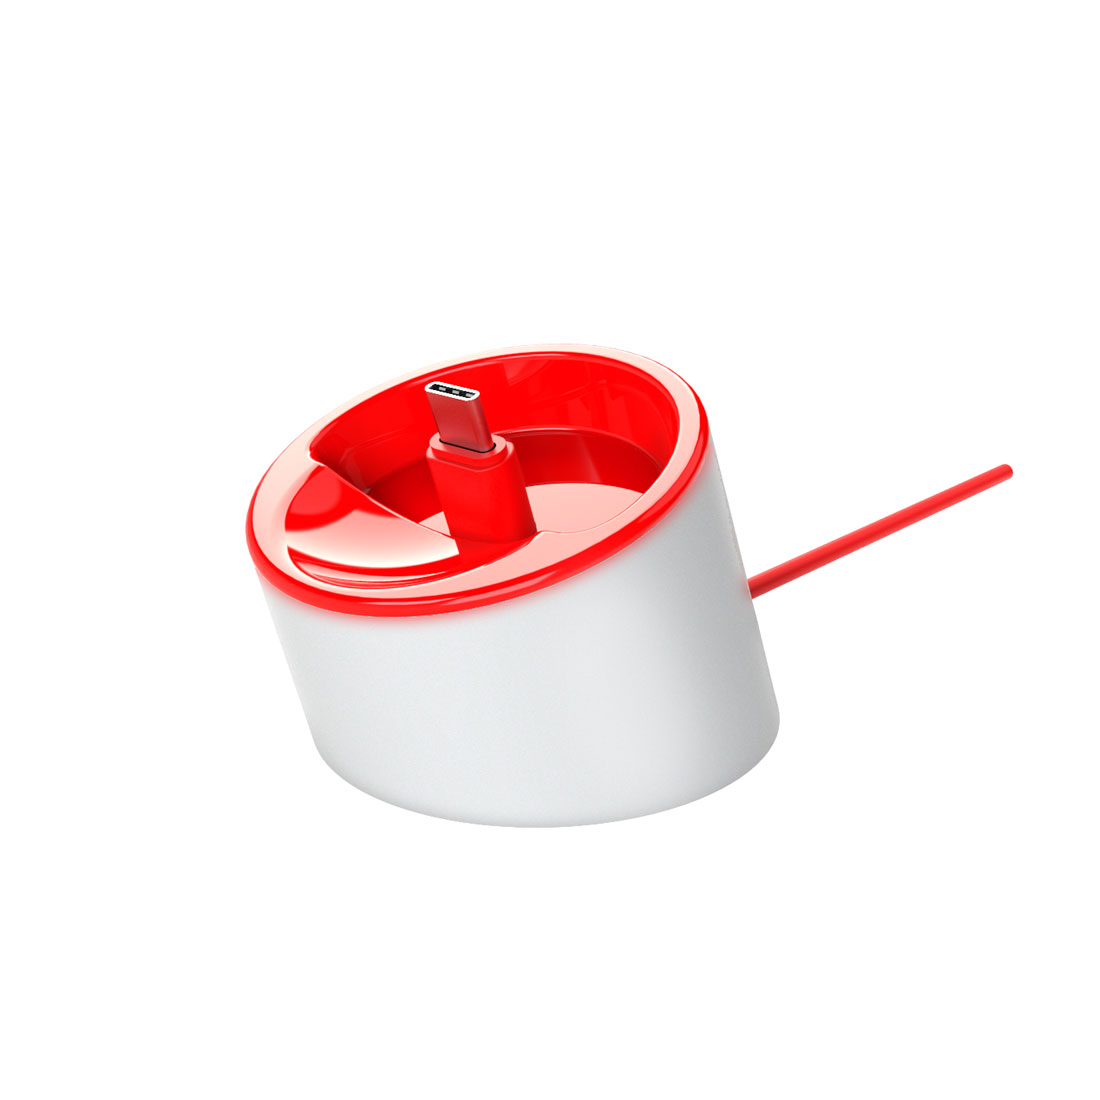 pokeball-charger-angle-right-1100x1100